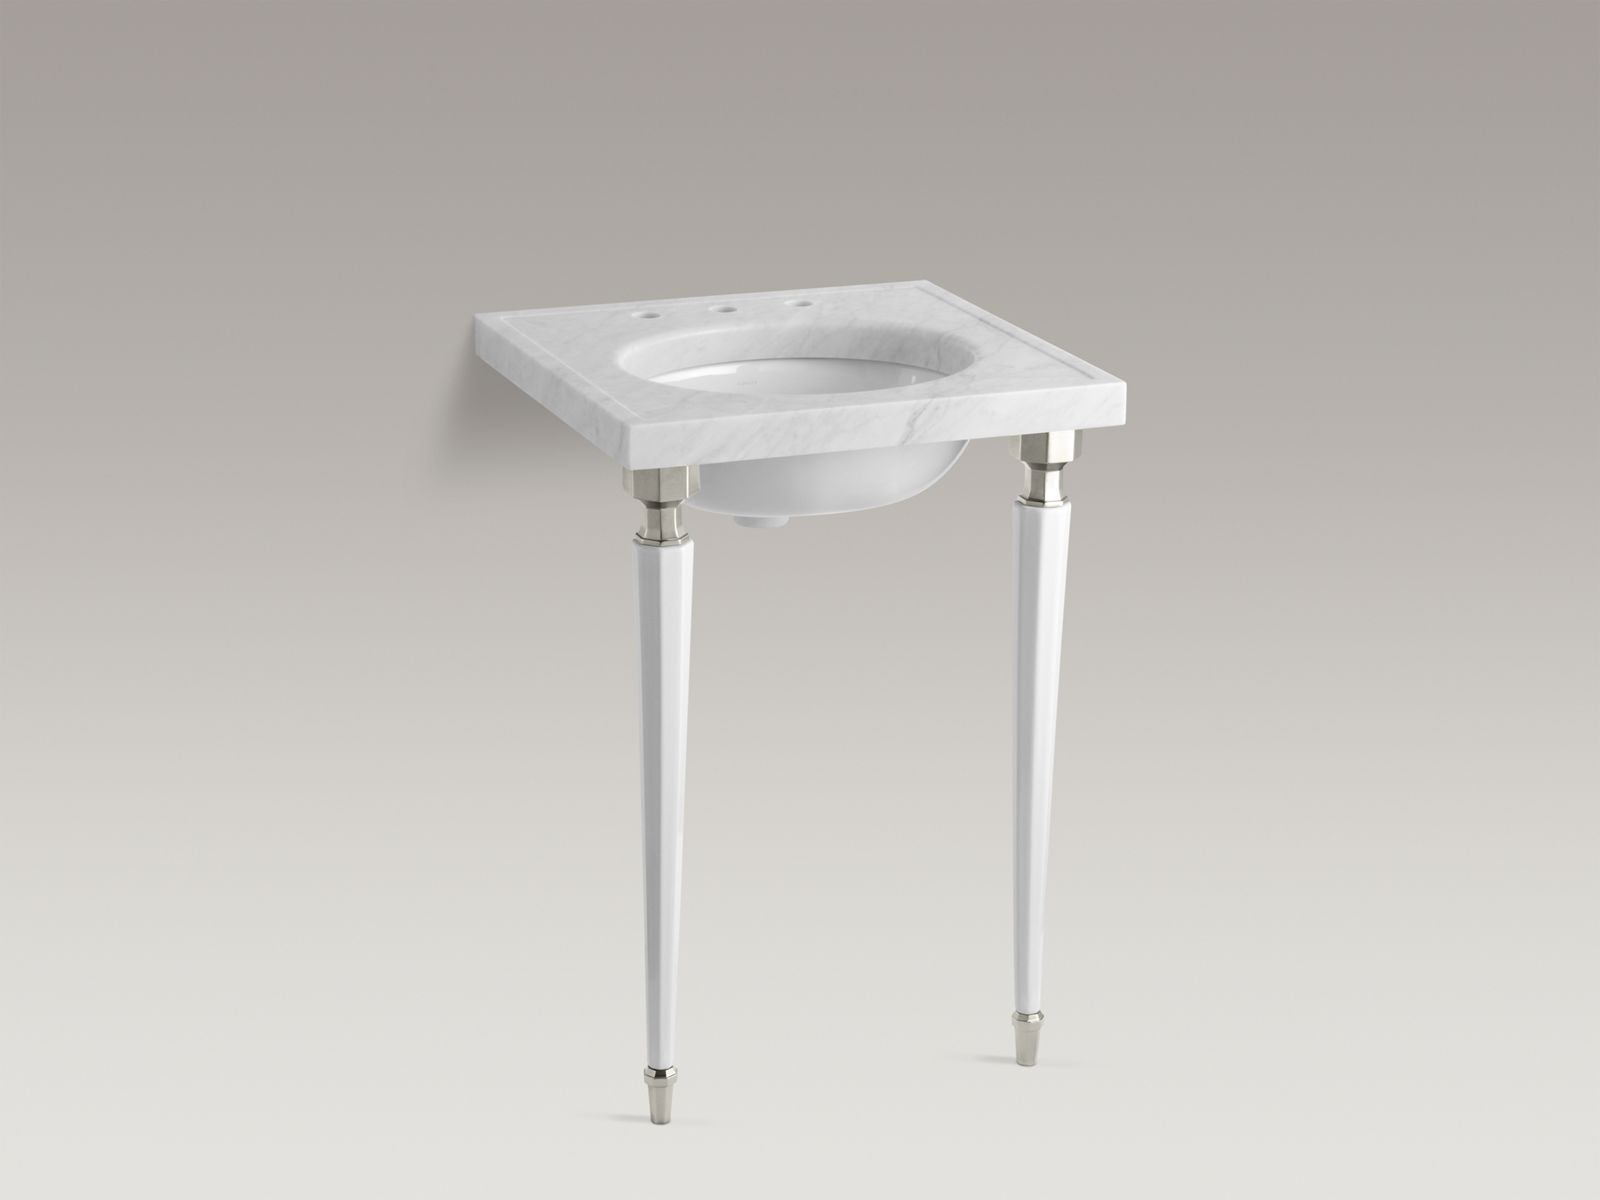 Kathryn® octagonal fireclay/Brushed Nickel tapered brass table legs